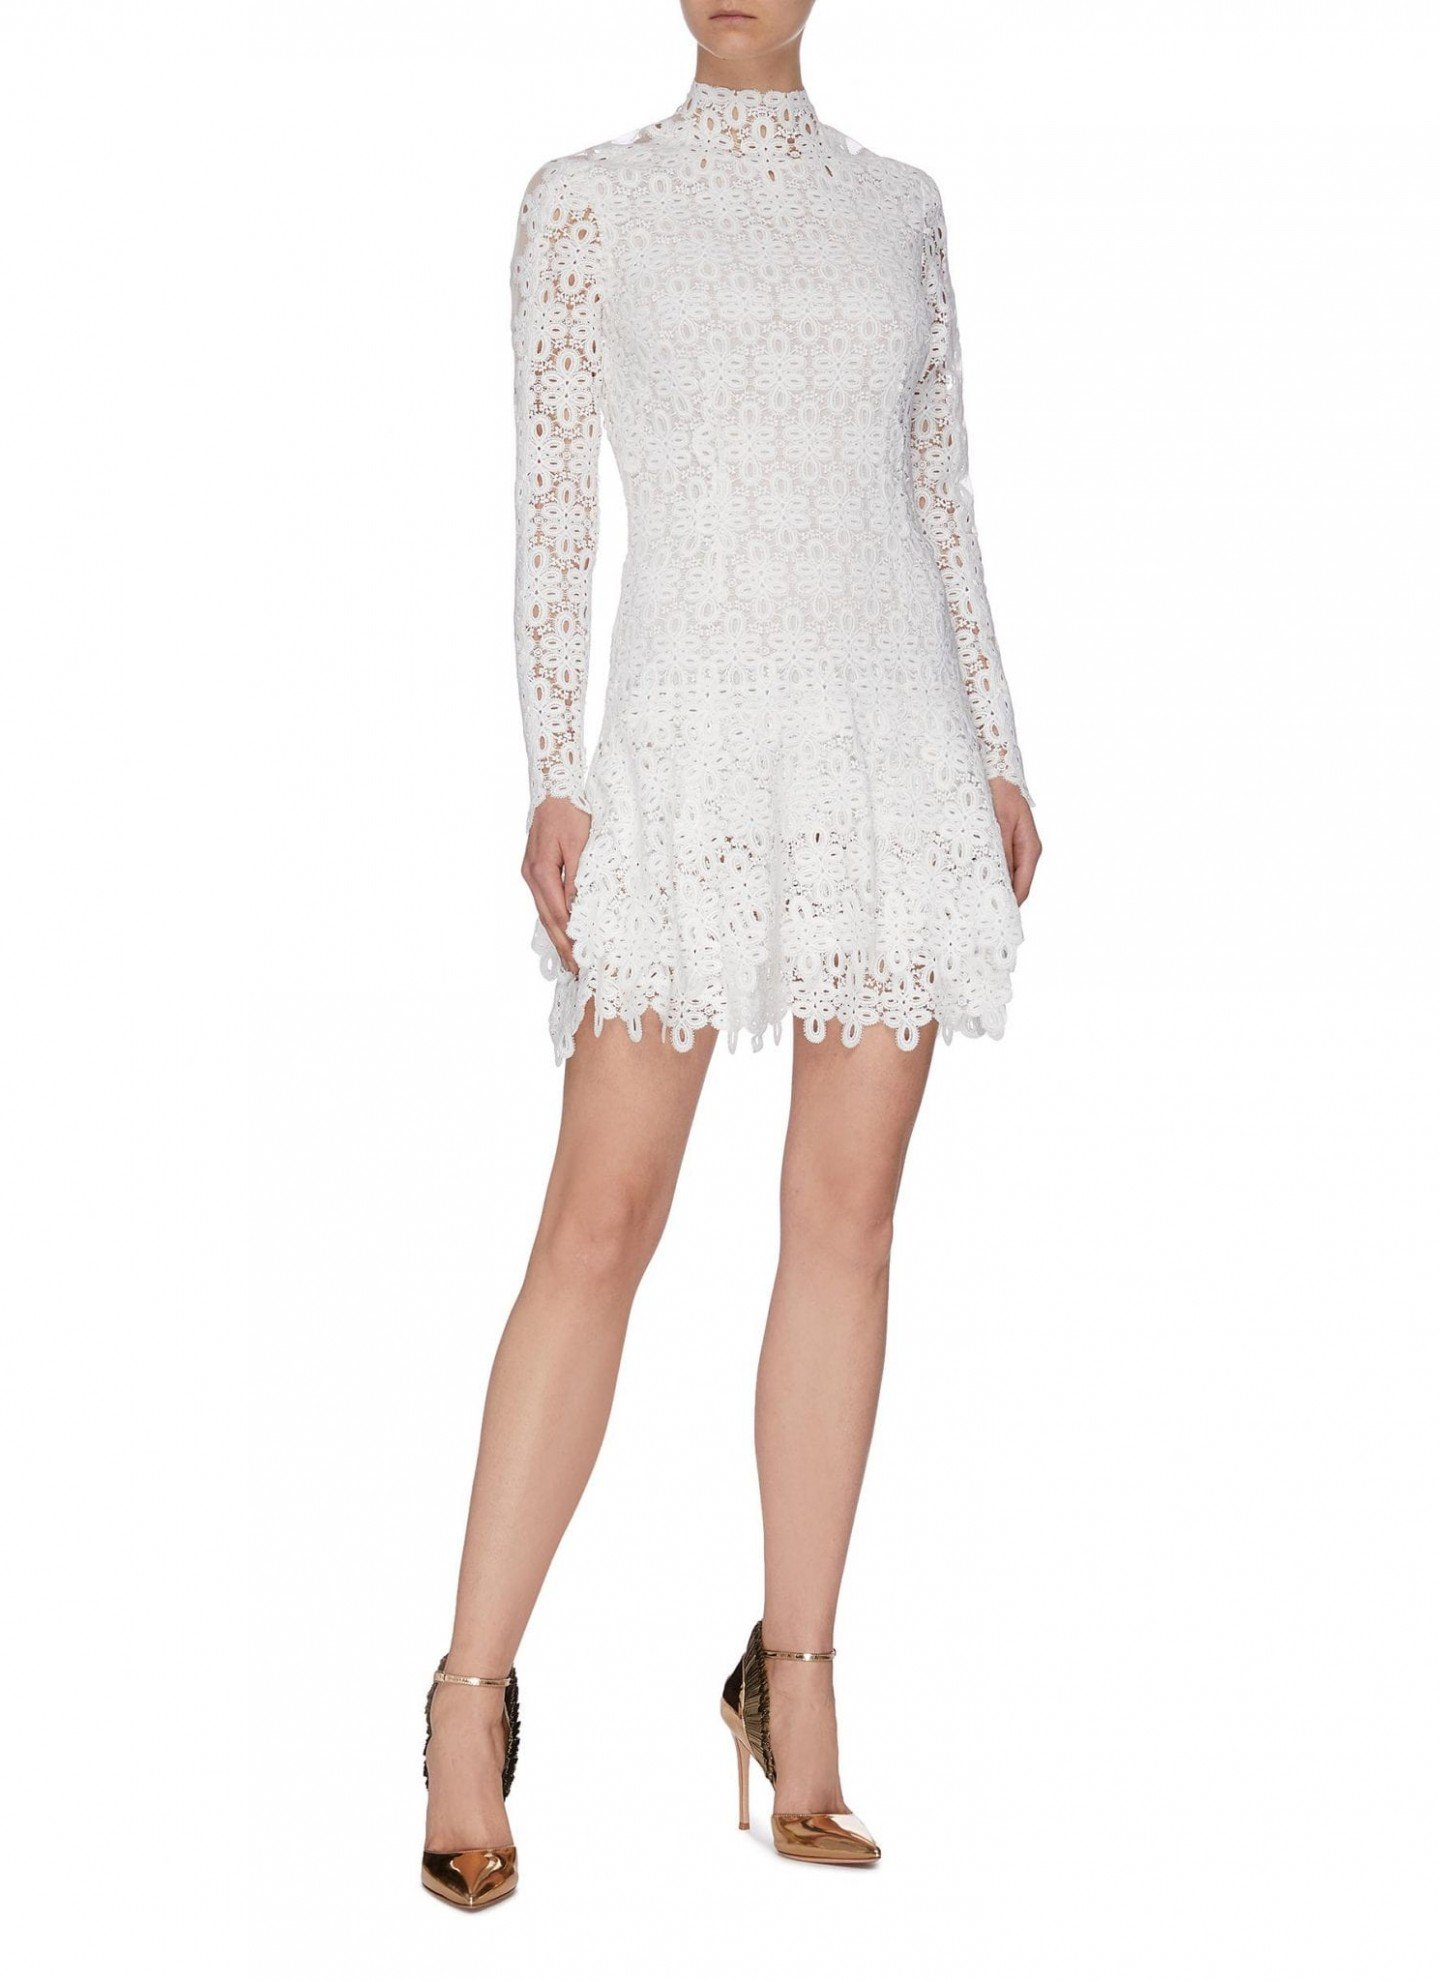 JONATHAN SIMKHAI 'Guipure' Lace Mini Dress